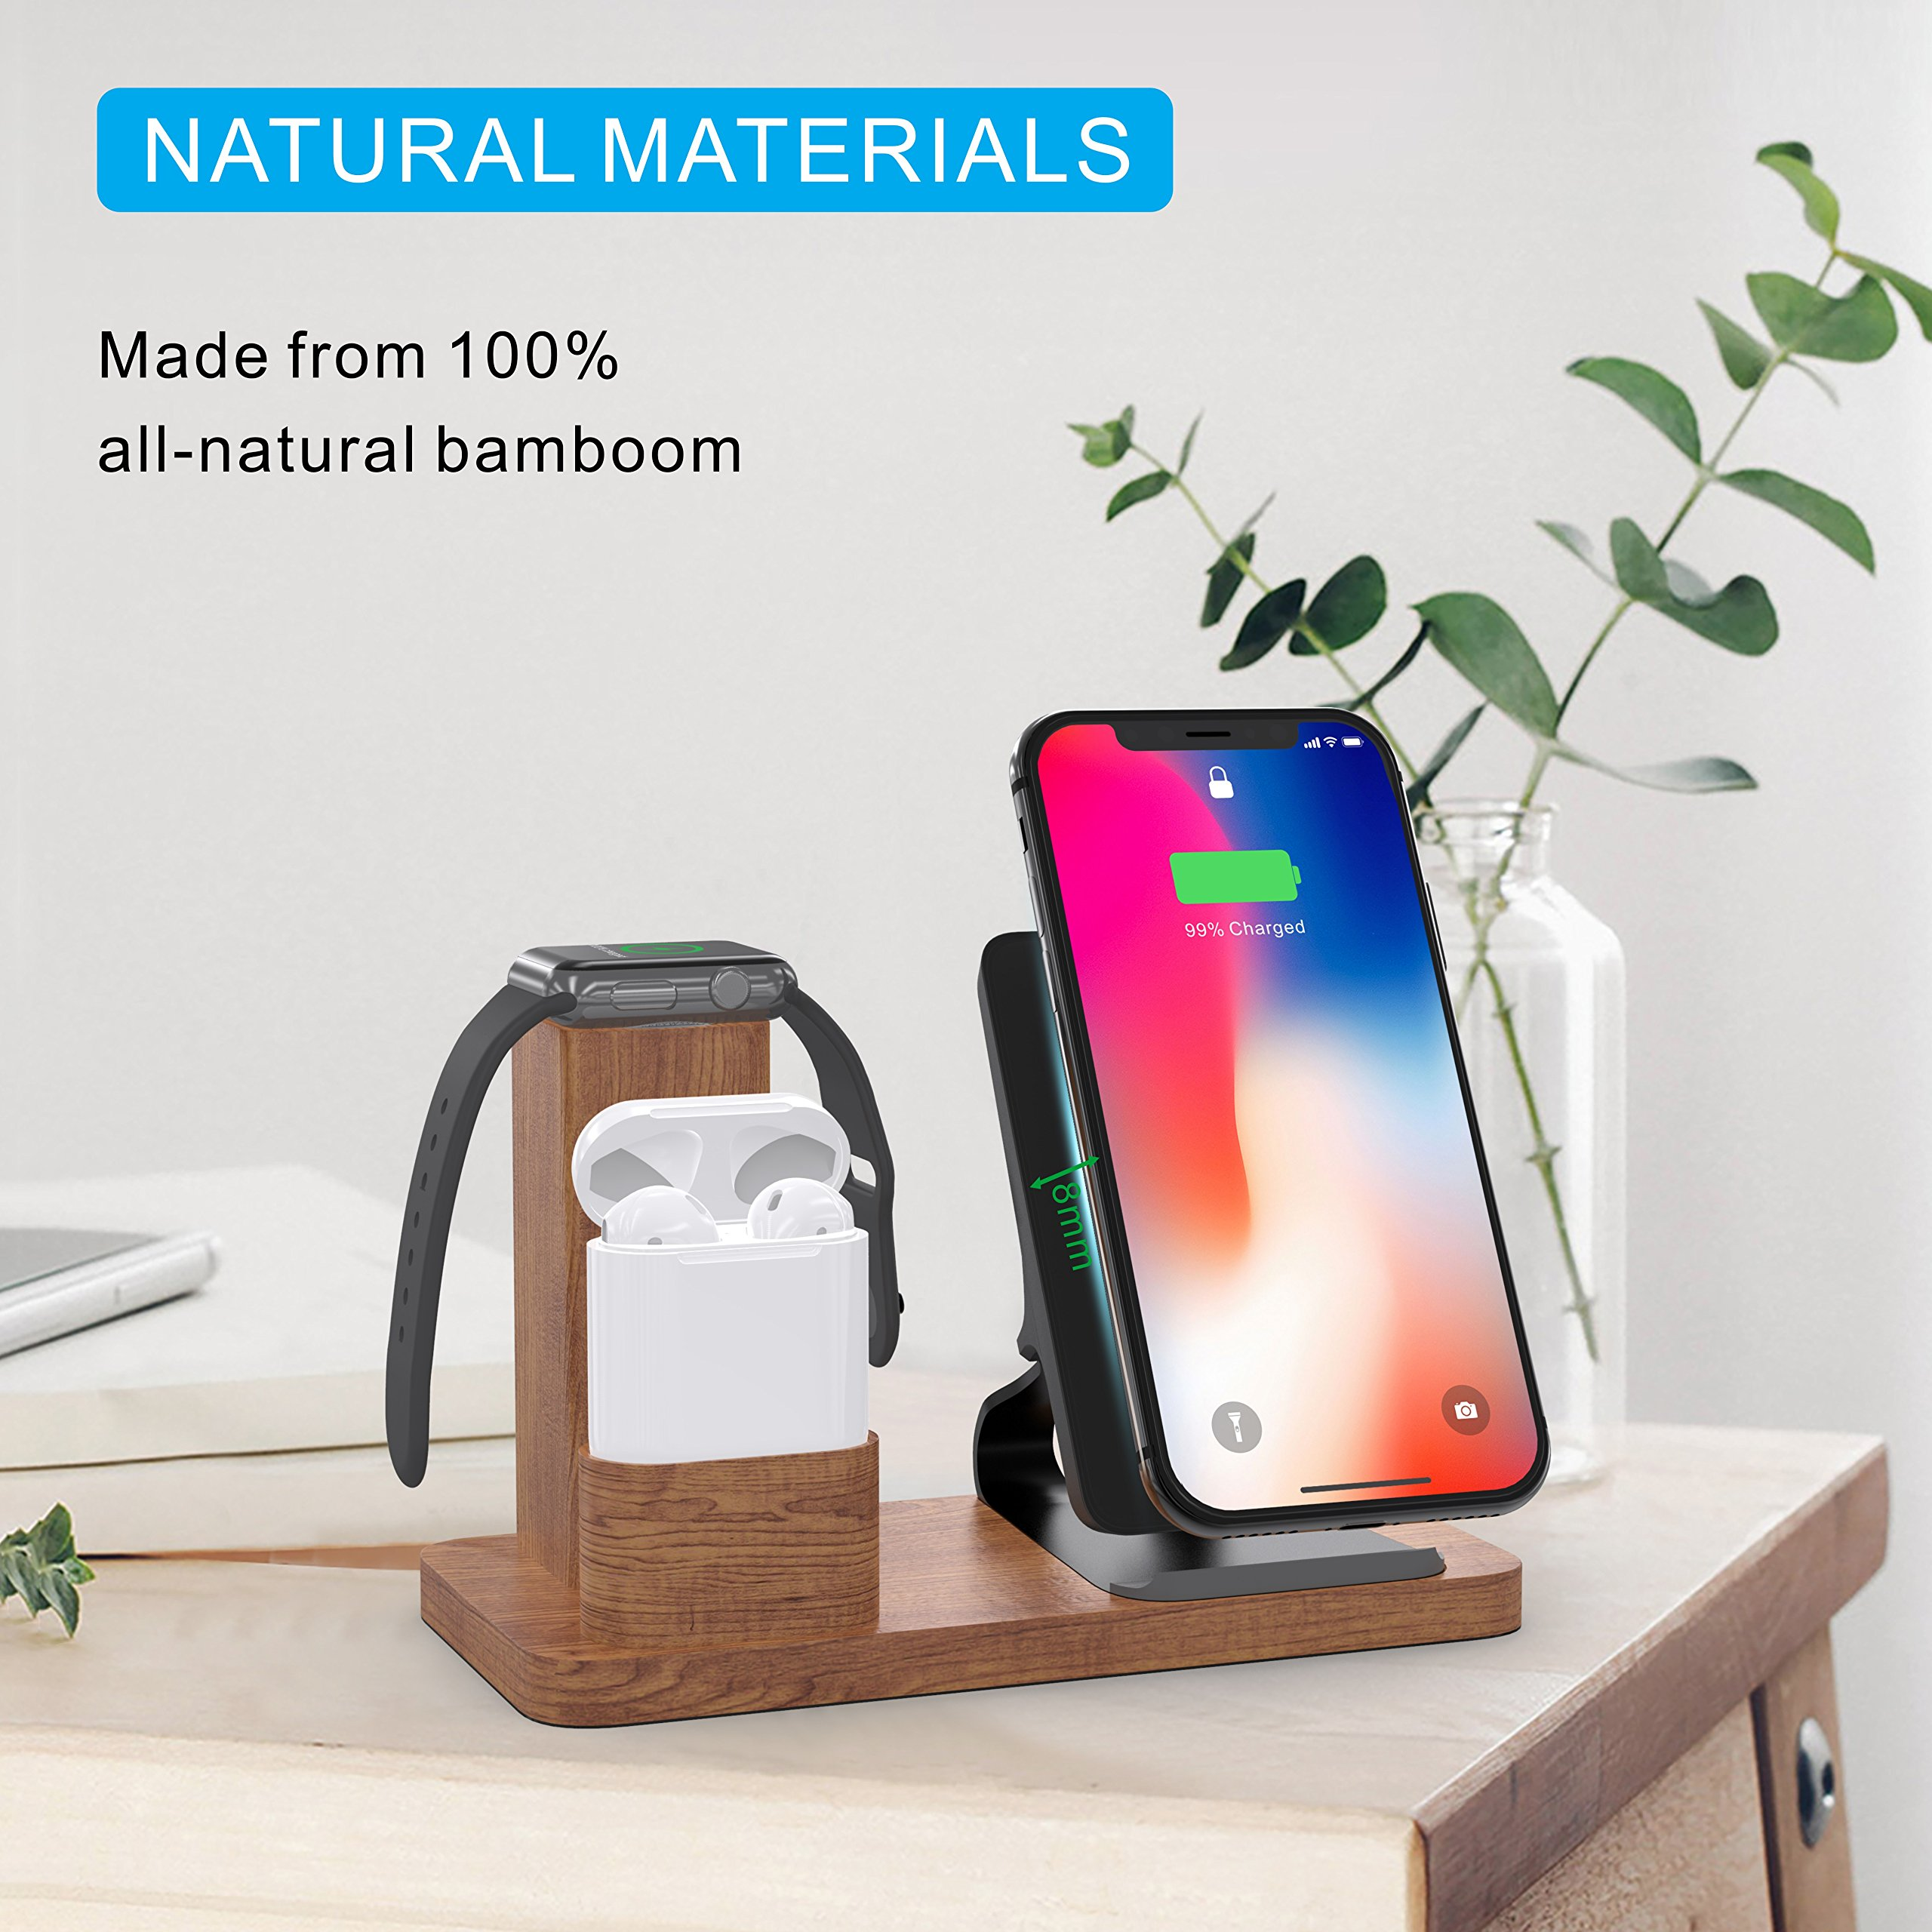 Wireless Charger Stand Apple Watch Airpods Charging Station, OLVOO 3 in 1 Wood Charging Docks for AirPods/Apple Watch Series 3/2/1 iPhone X/8/8 Plus Samsung Note 8/S9/S9 Plus by OLVOO (Image #5)